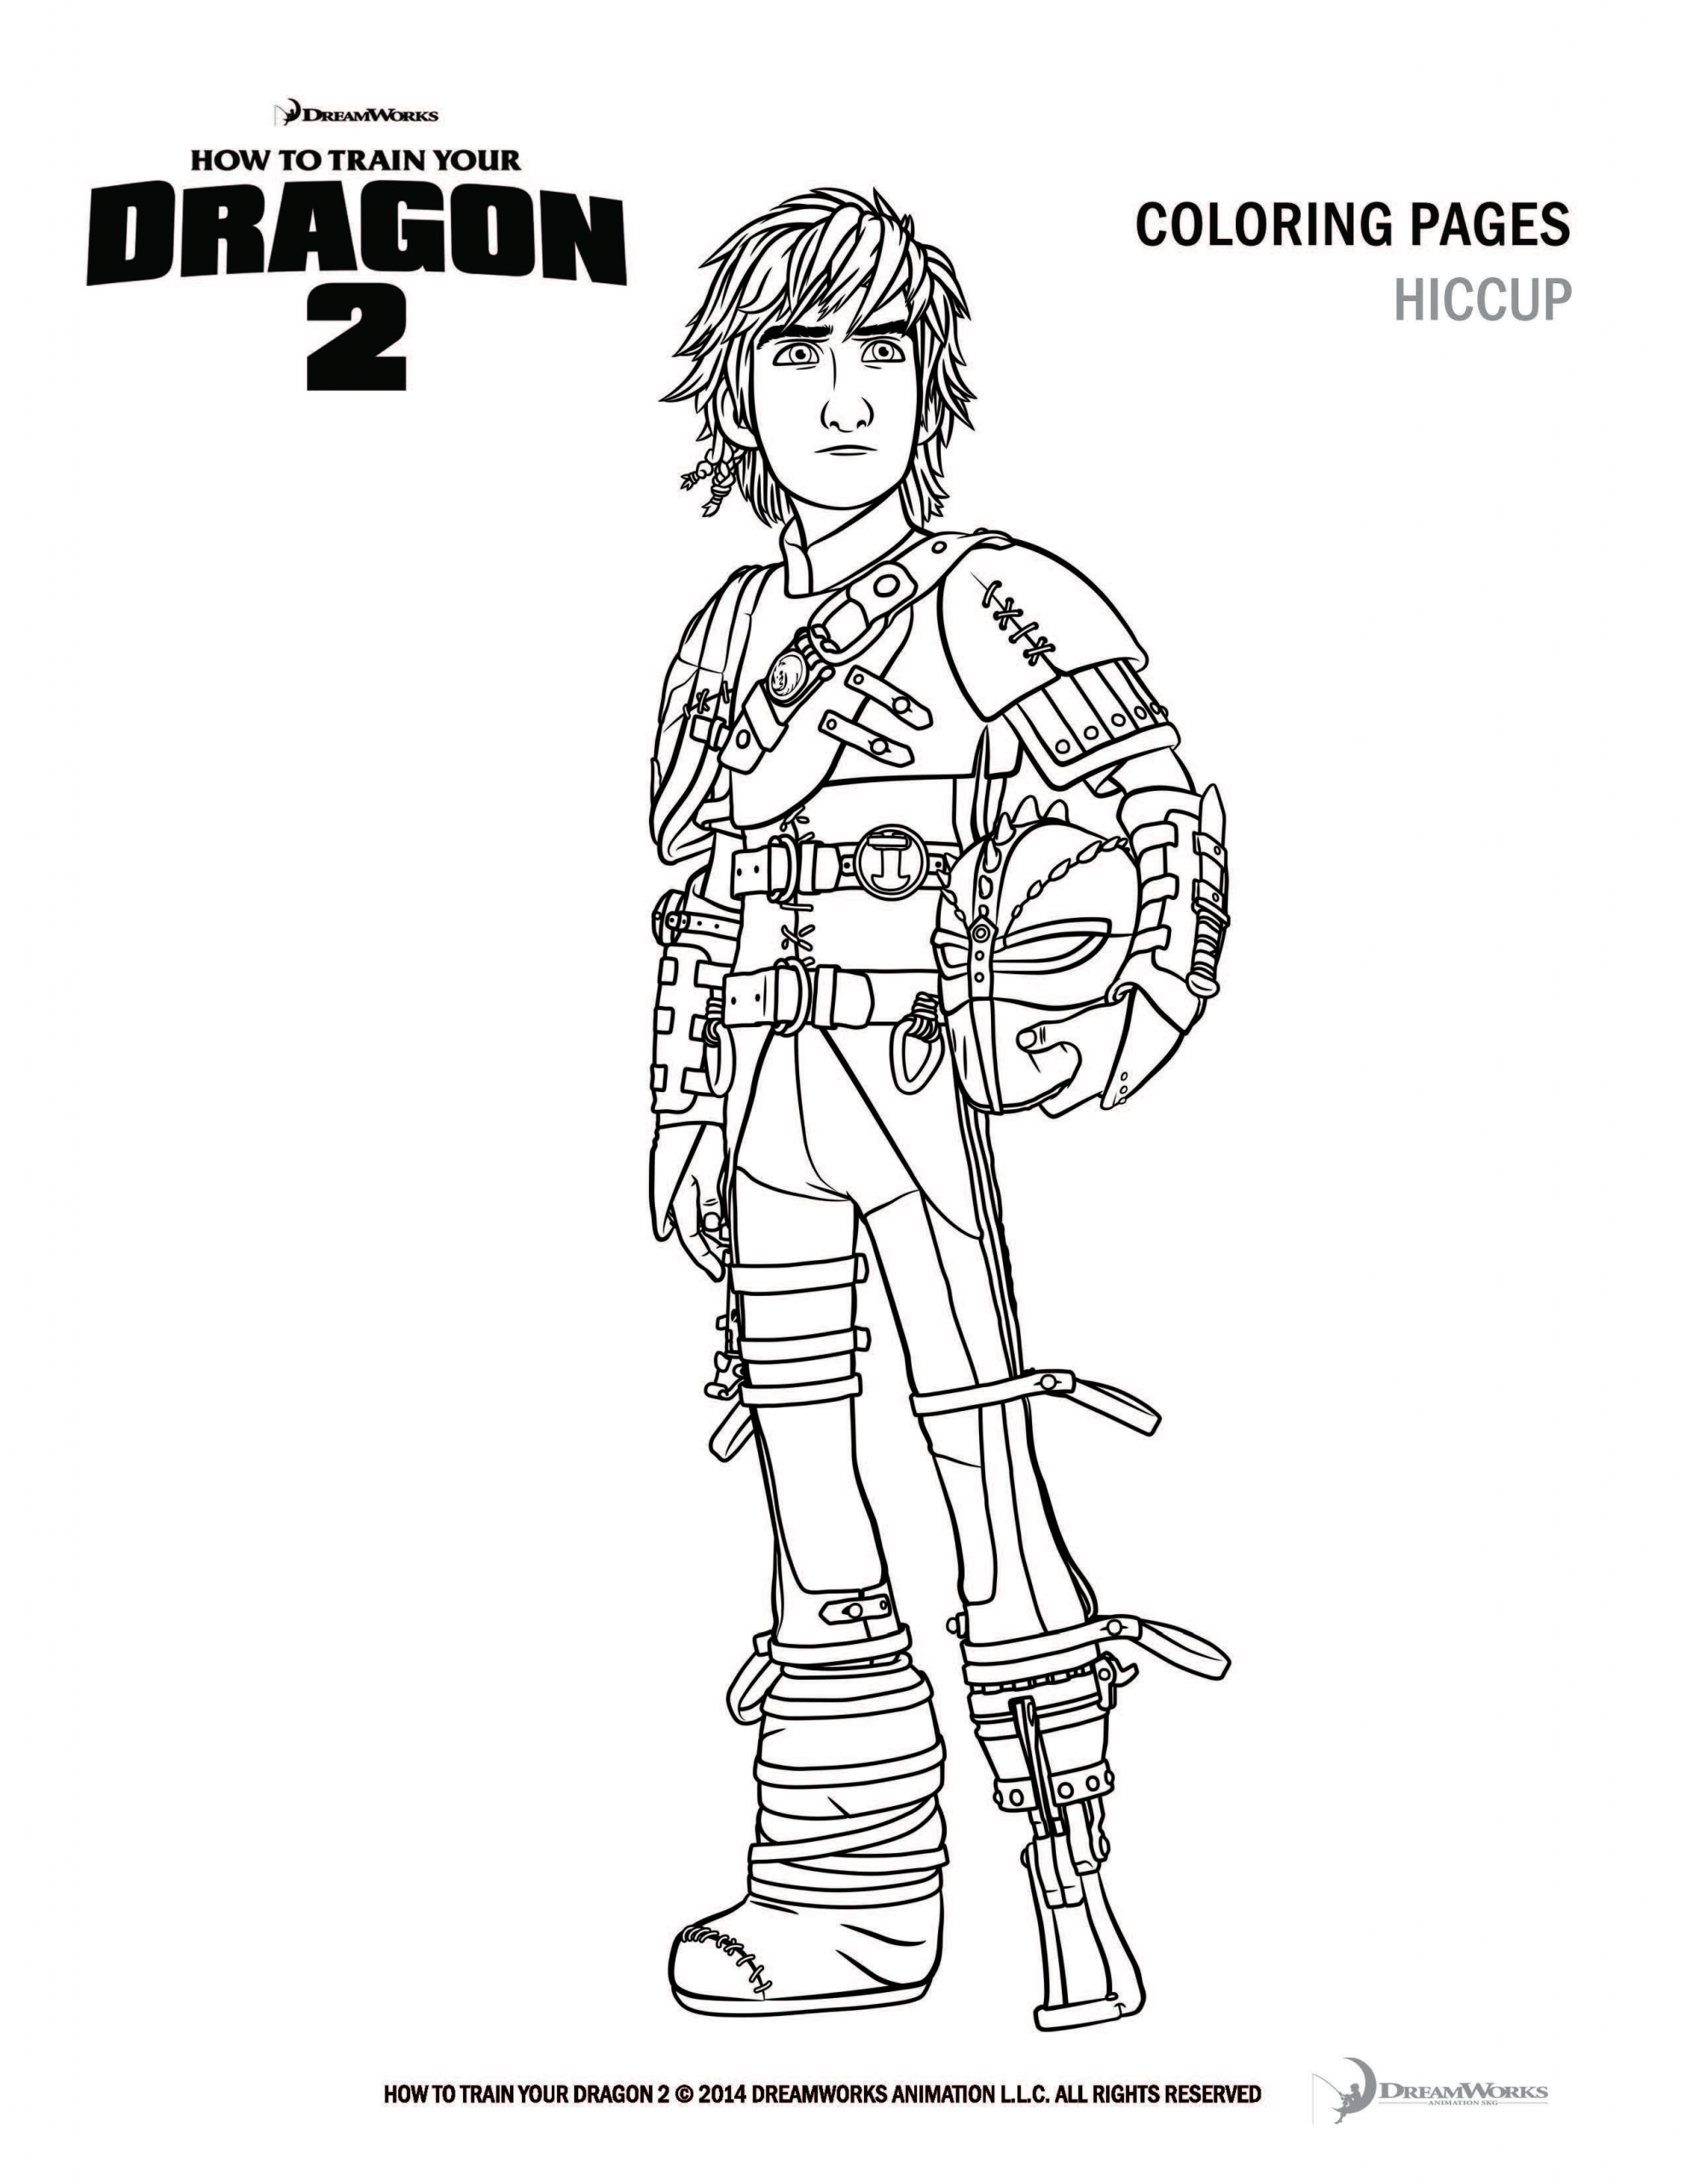 How To Train Your Dragon 3 Coloring Page Free Printable How To Train Your Dragon Coloring P In 2020 Dragon Coloring Page How Train Your Dragon How To Train Your Dragon